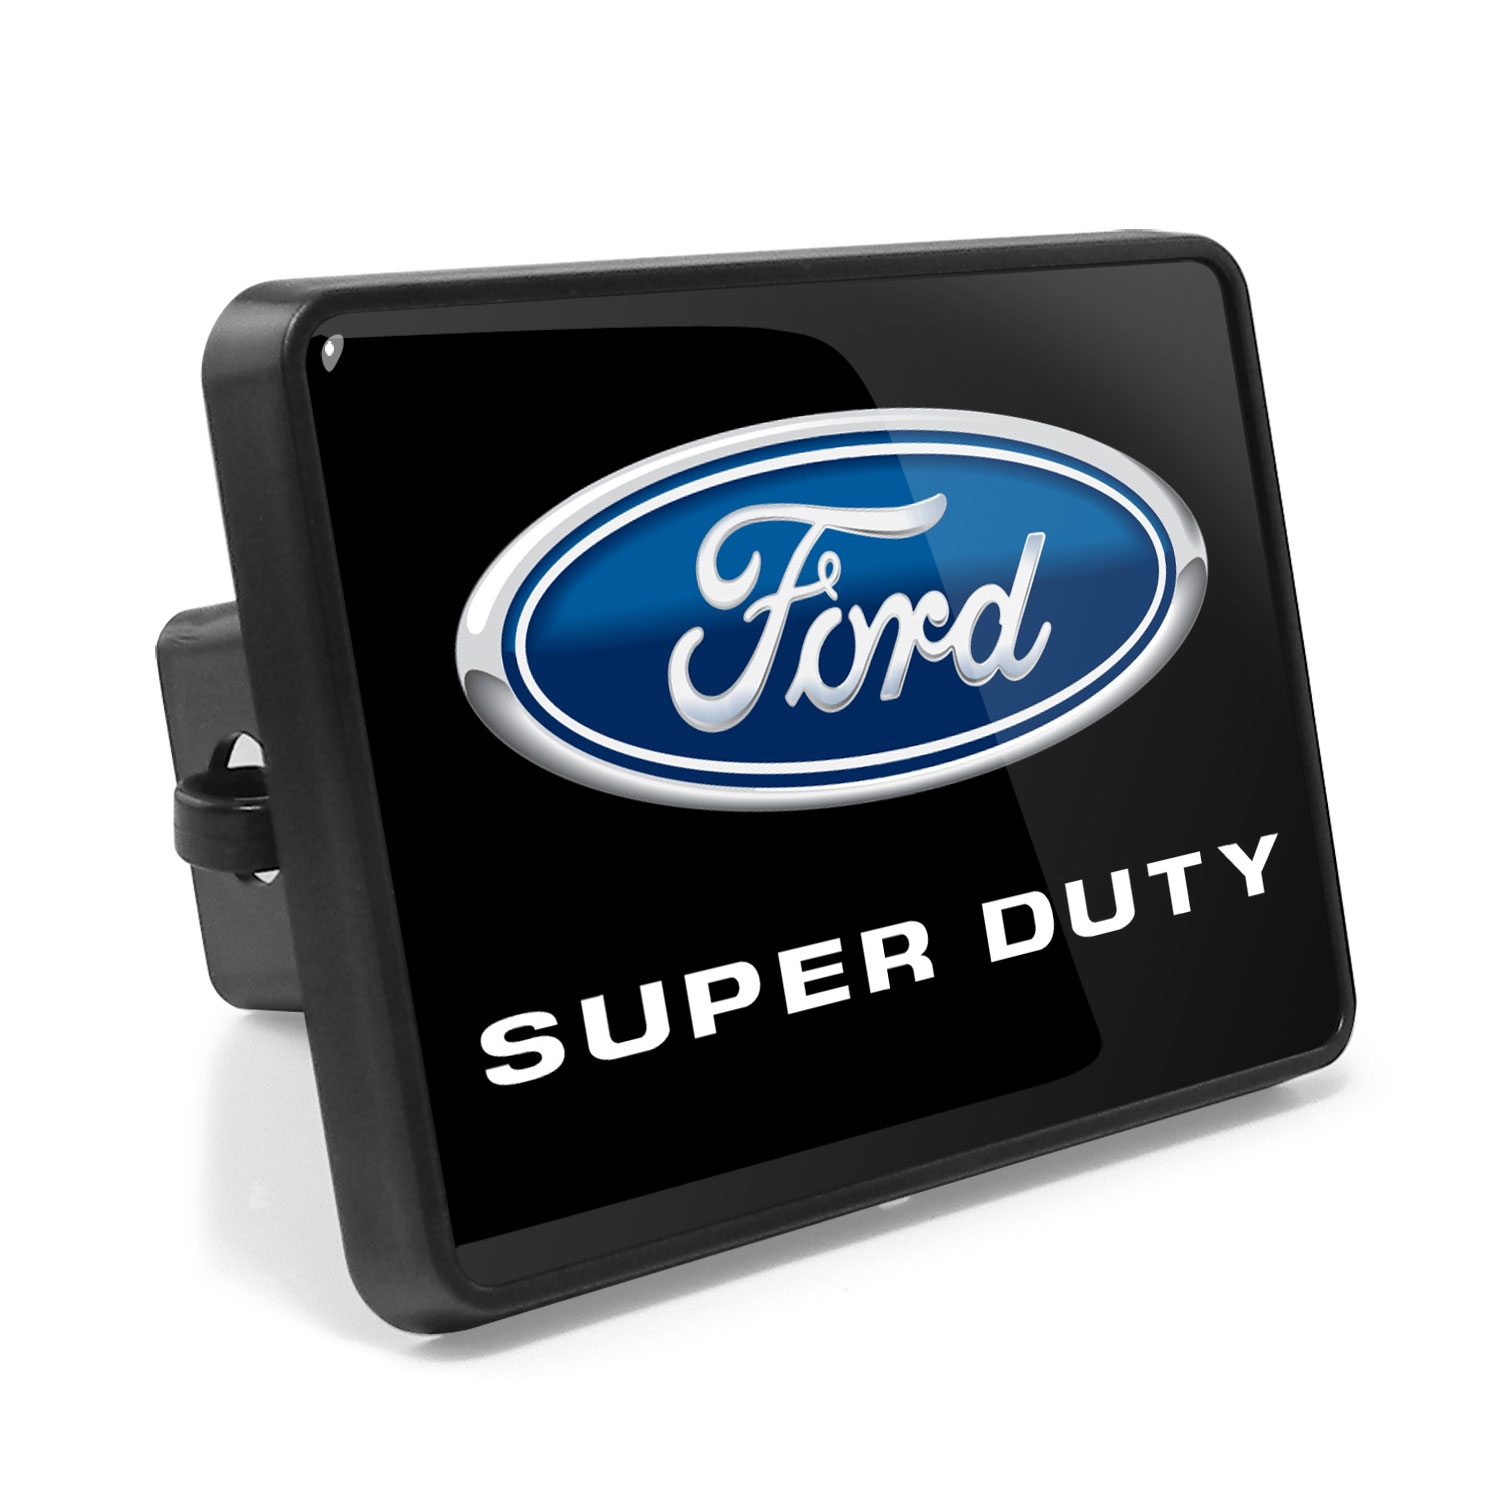 Ford F-Series Super Duty 2011 to 2016 UV Graphic Metal Plate on ABS Plastic 2 inch Tow Hitch Cover